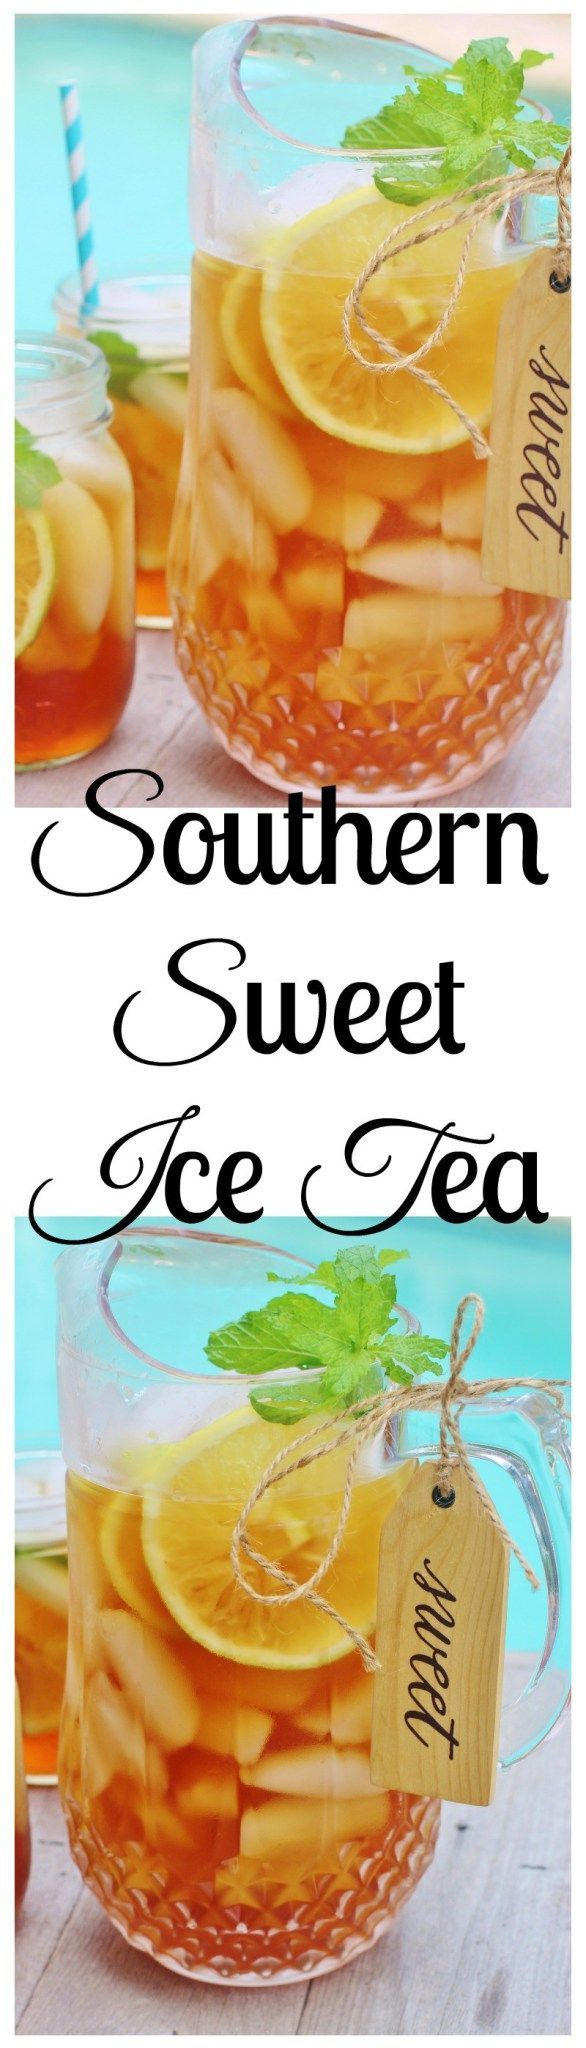 Southern Sweet Ice Tea. Tips for brewing a perfect pitcher of the table wine of the South.